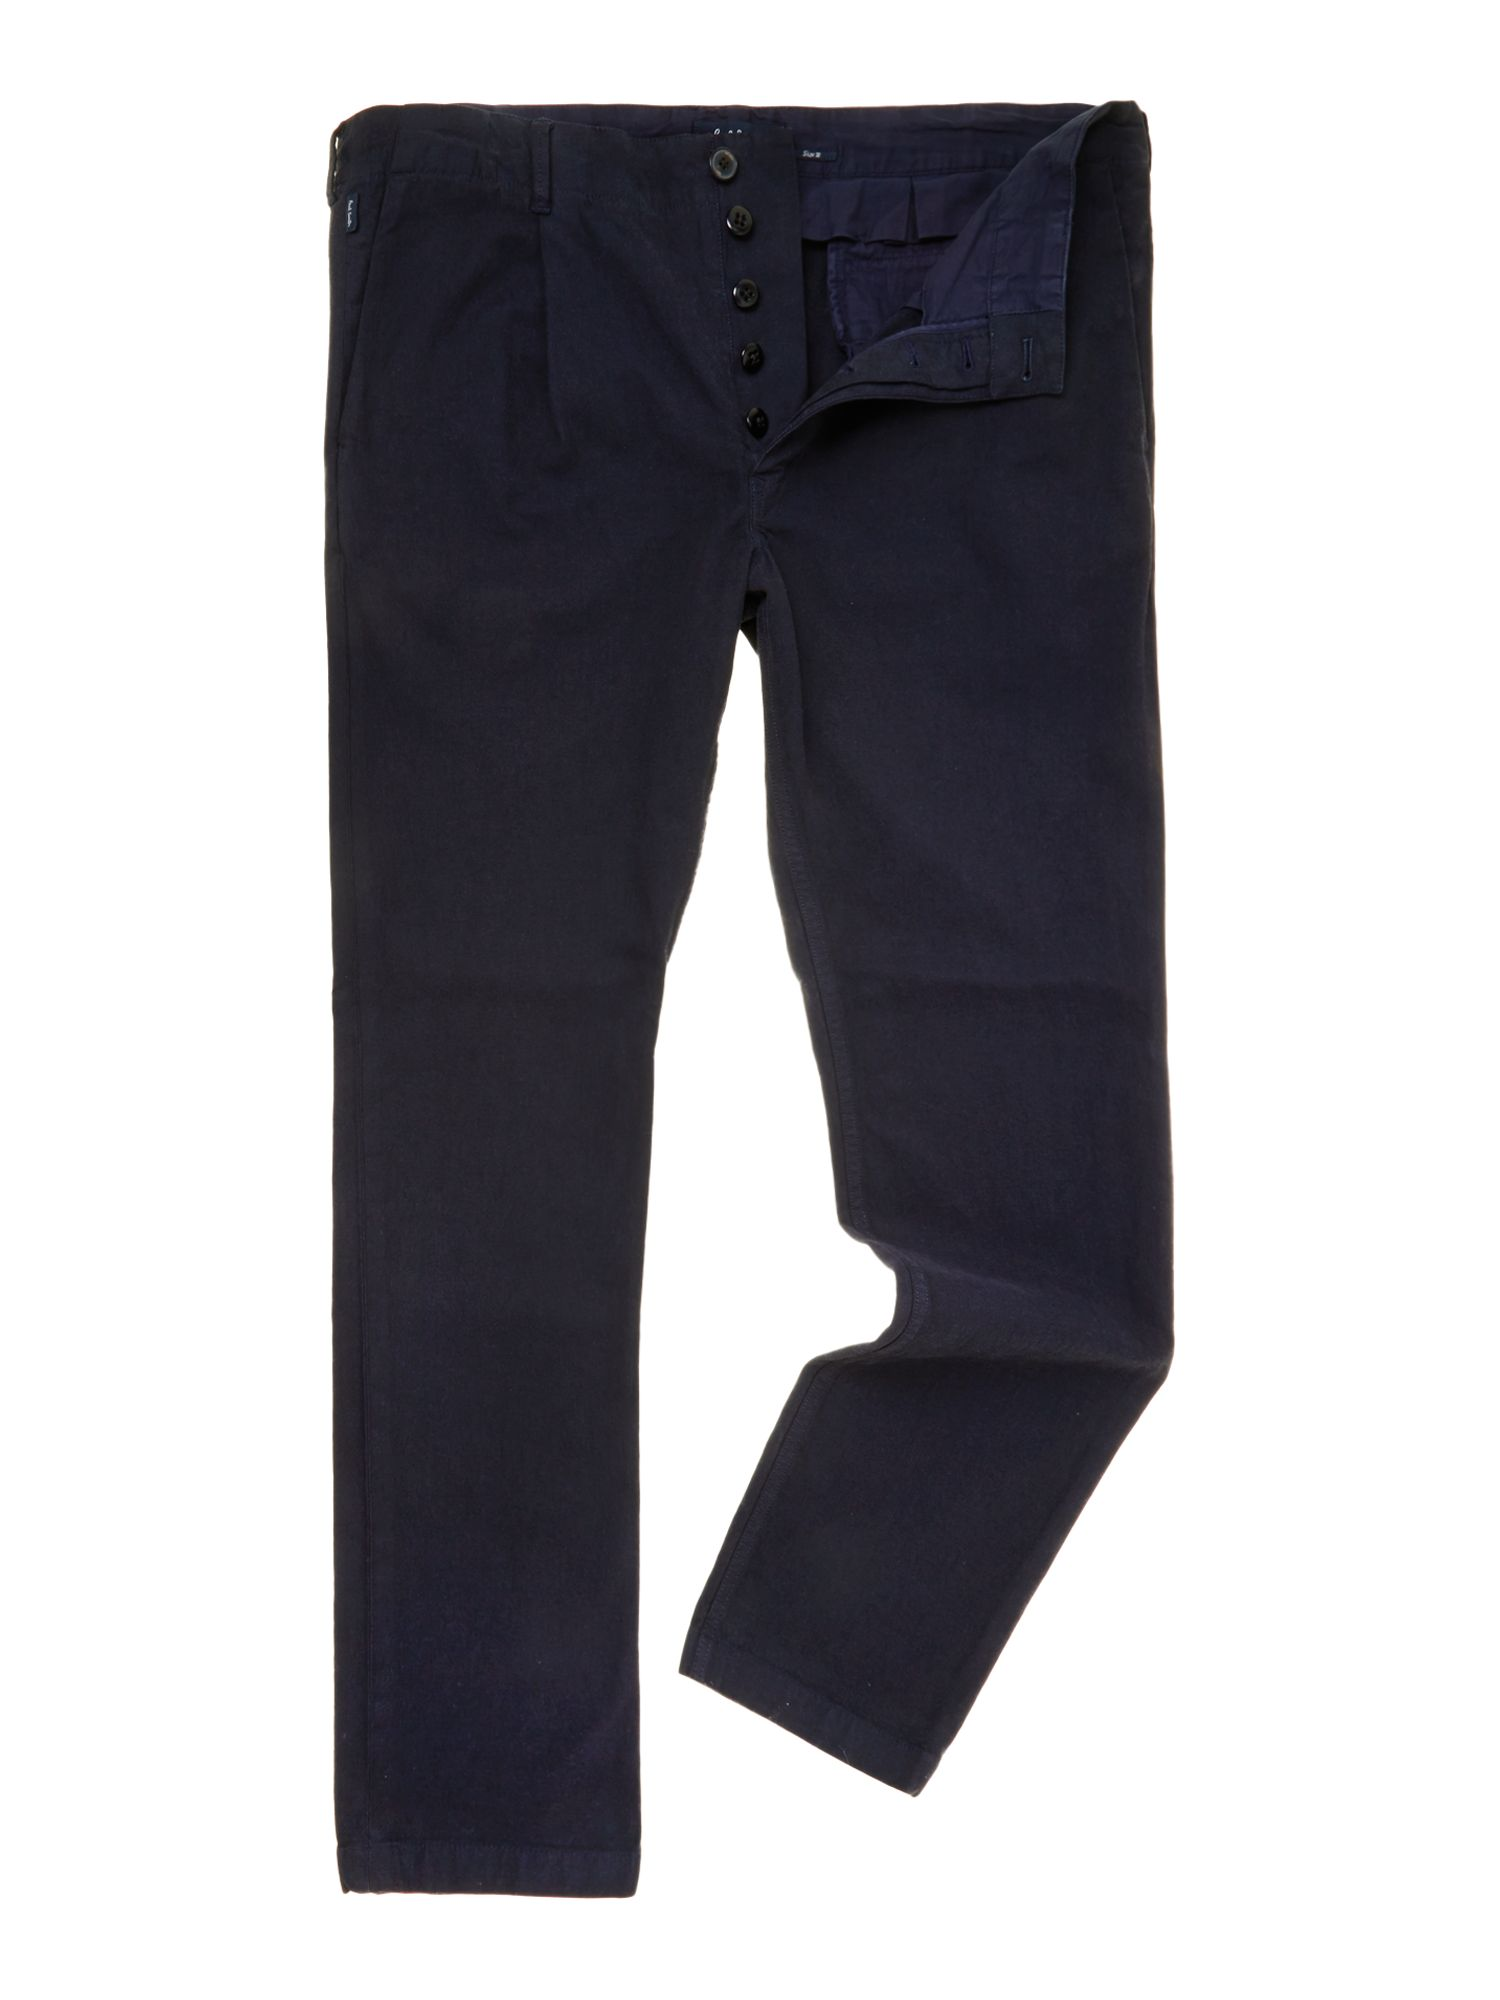 Dyed twill trousers